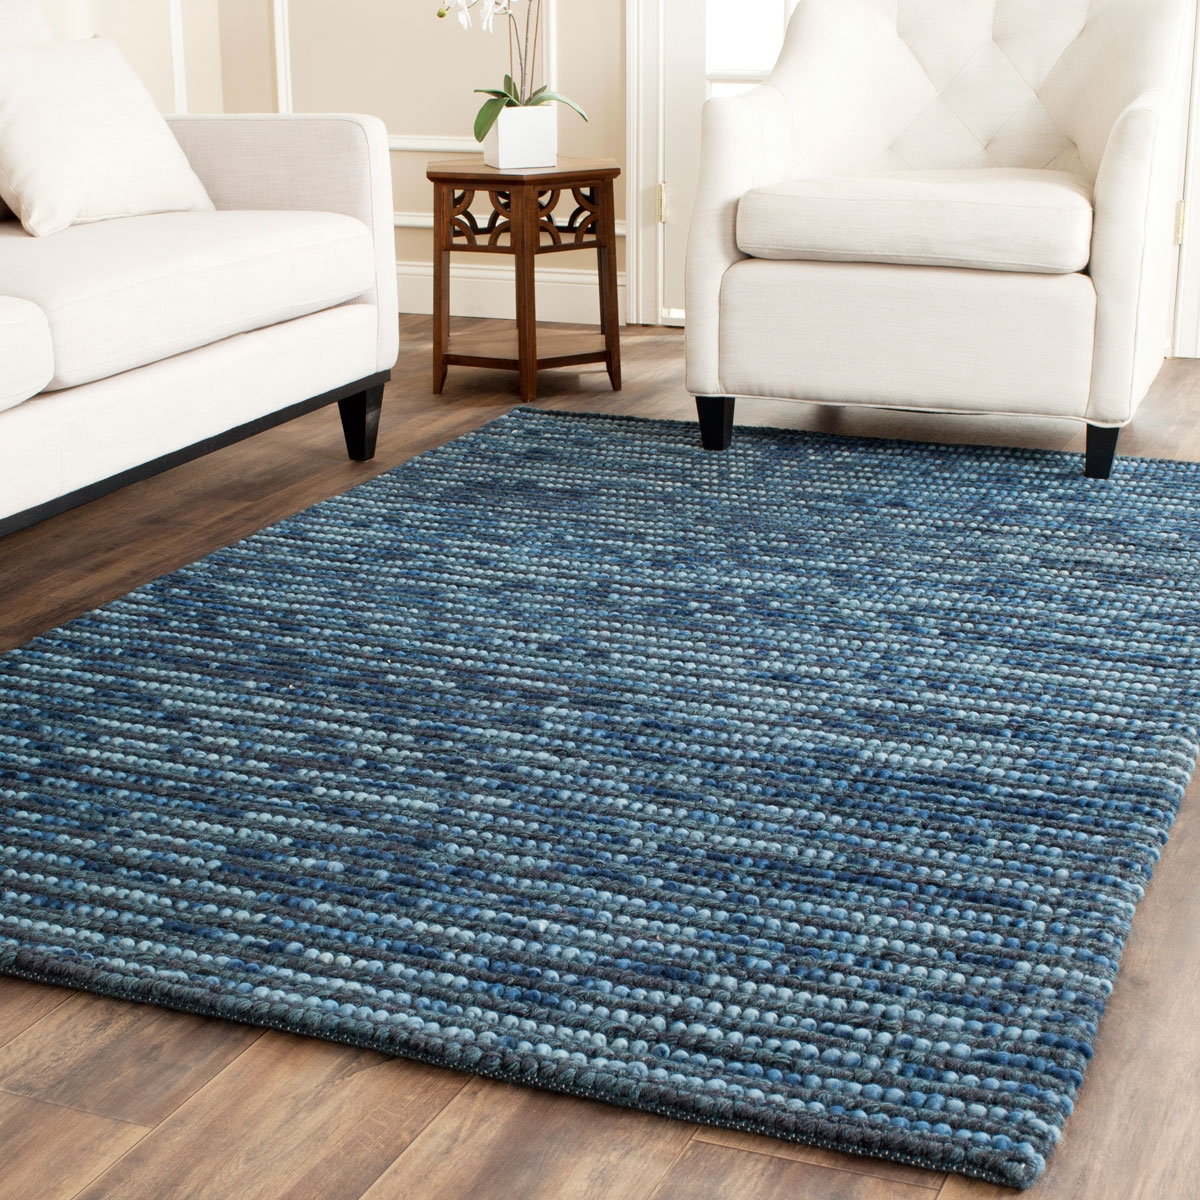 Rug Boh525g Bohemian Area Rugs Safavieh For Wool Jute Area Rugs (#7 of 15)